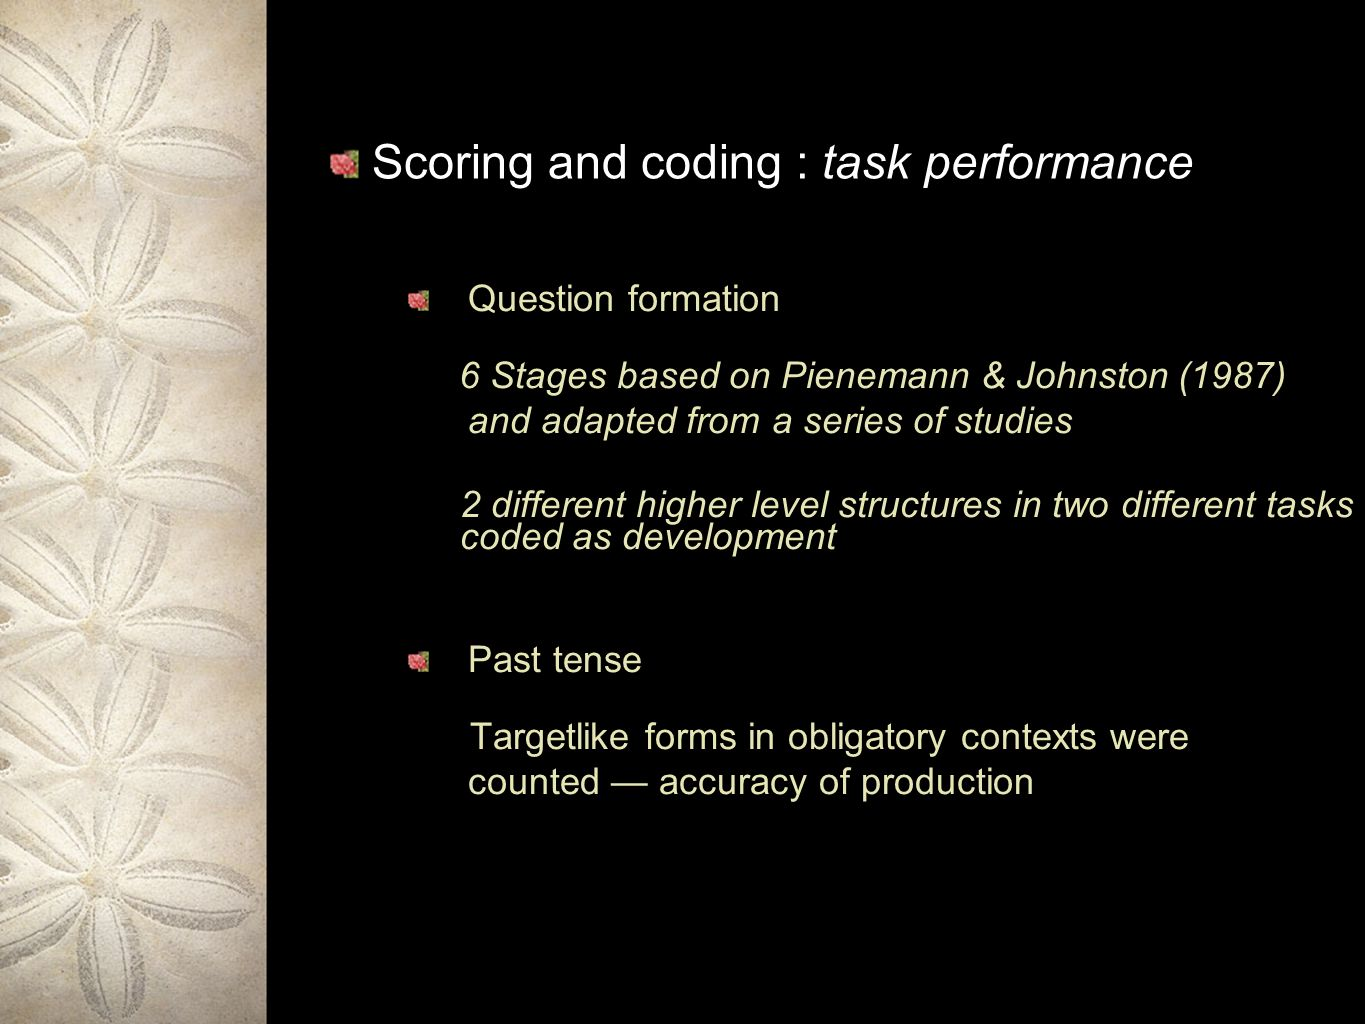 Scoring and coding : task performance